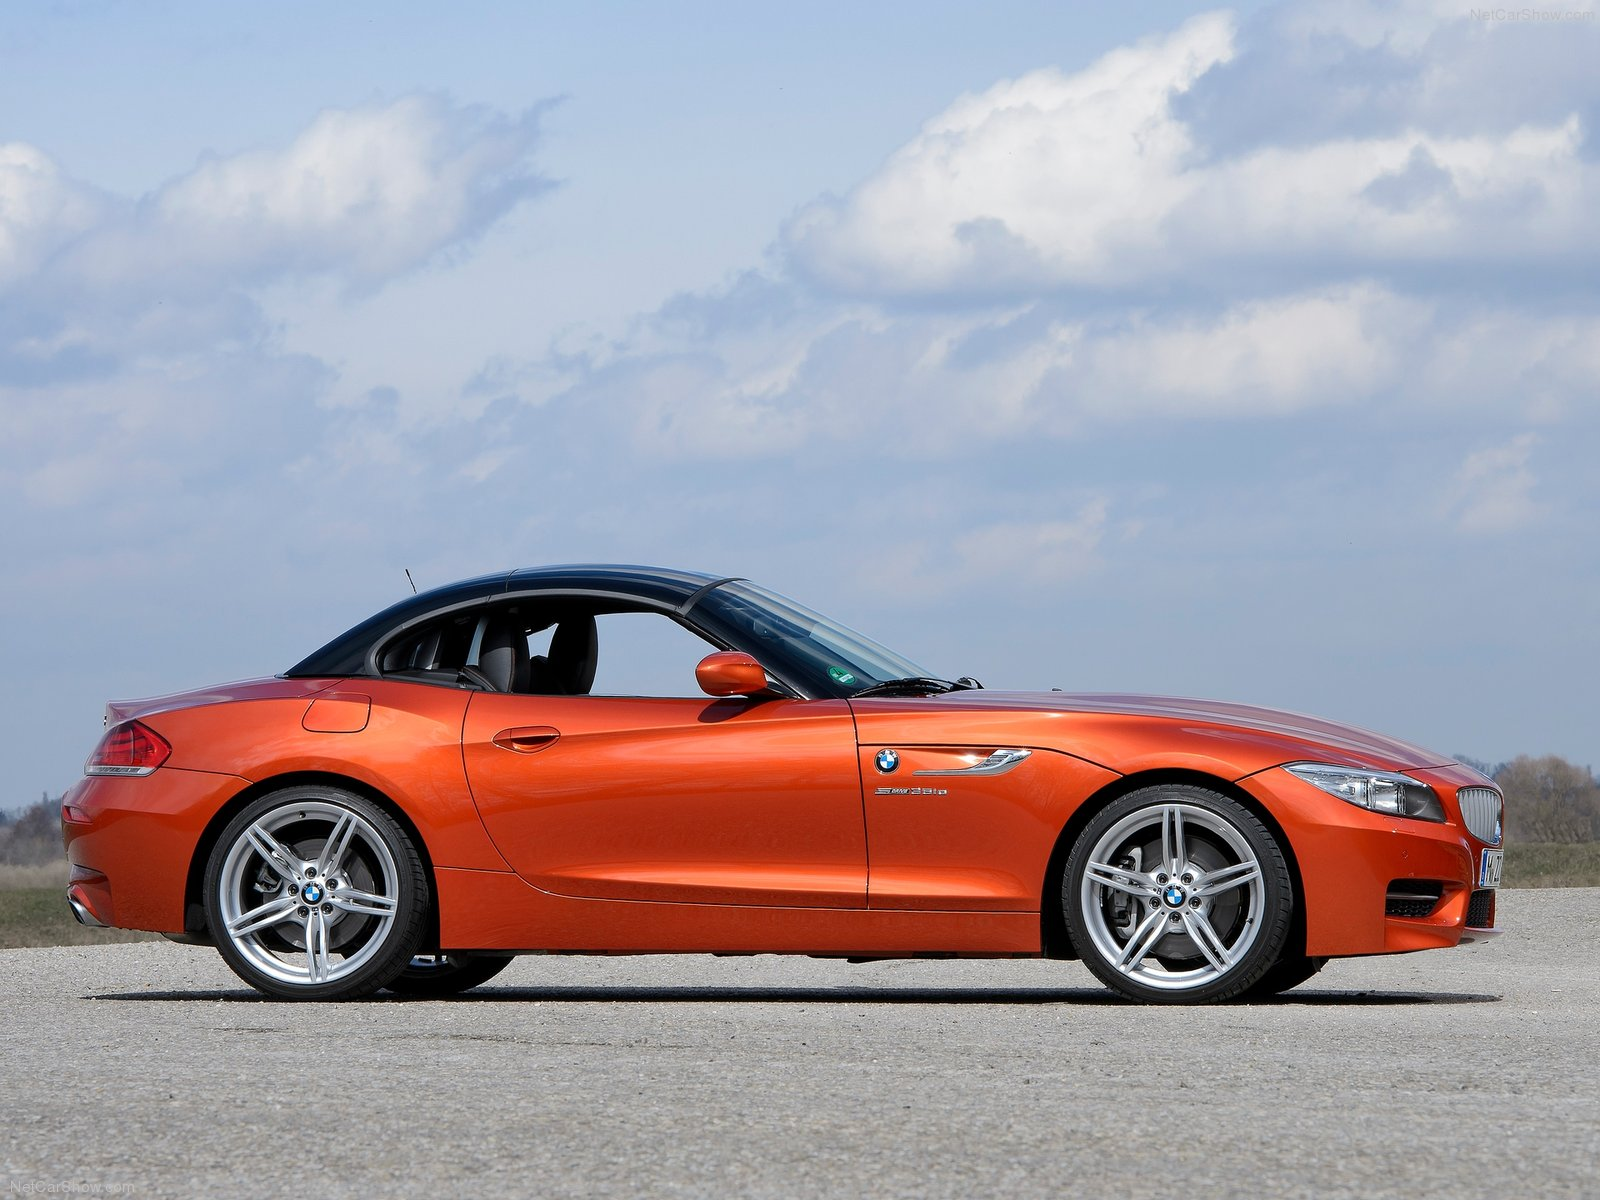 2014 bmw z4 roadster review spec release date picture and. Black Bedroom Furniture Sets. Home Design Ideas